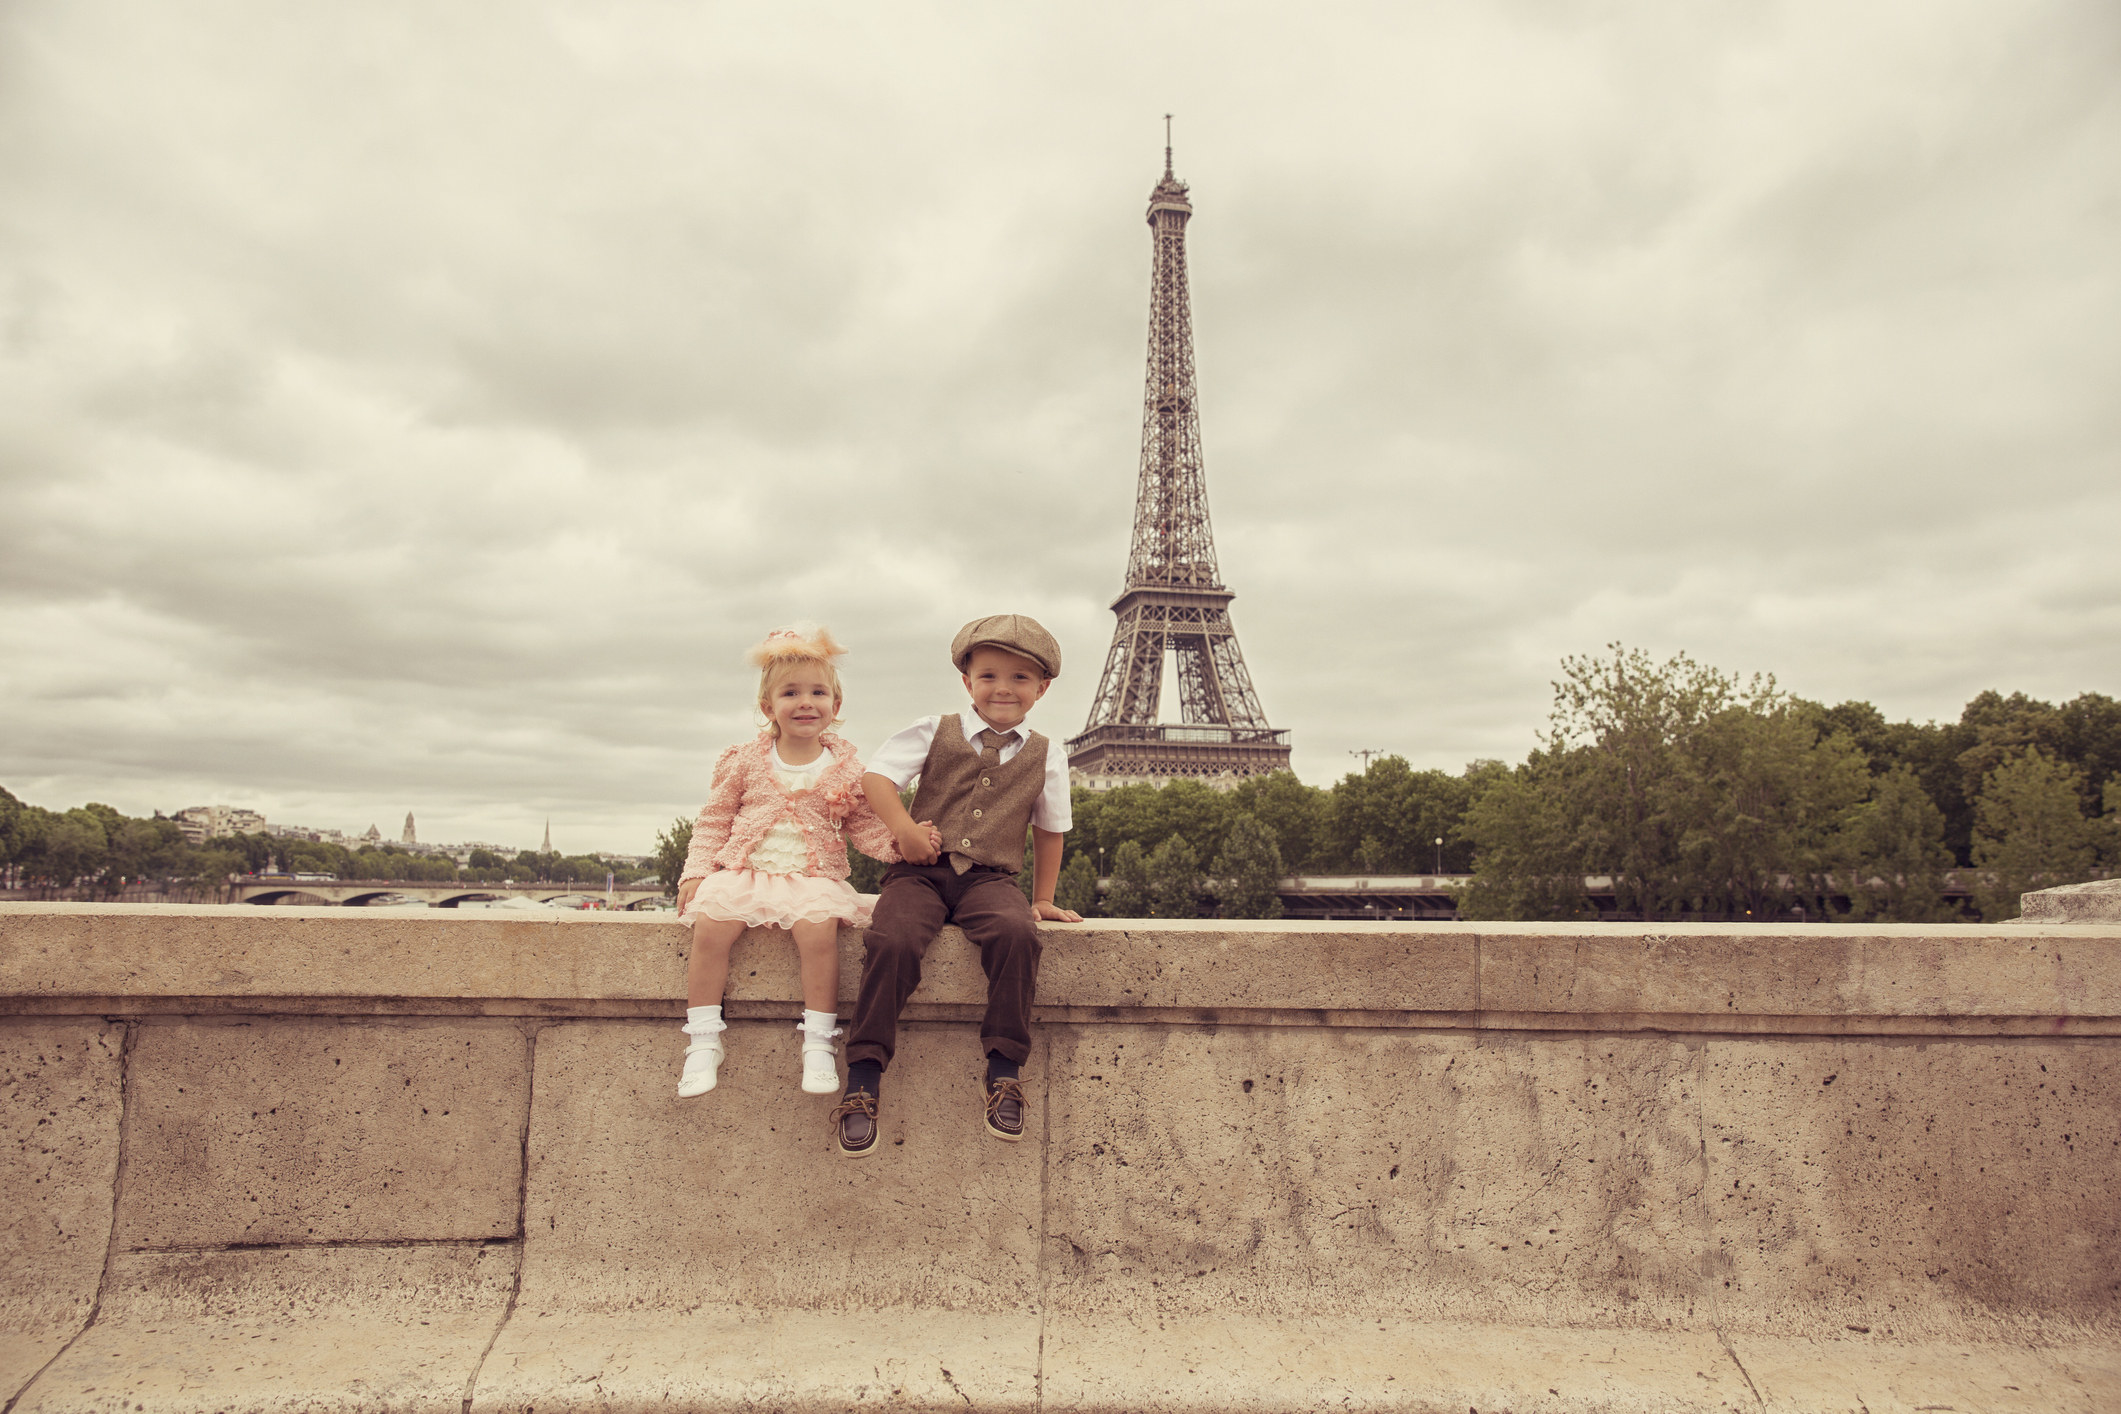 A small boy and girl are dressed in old-timey clothes as they stand in front of the Eiffel Tower